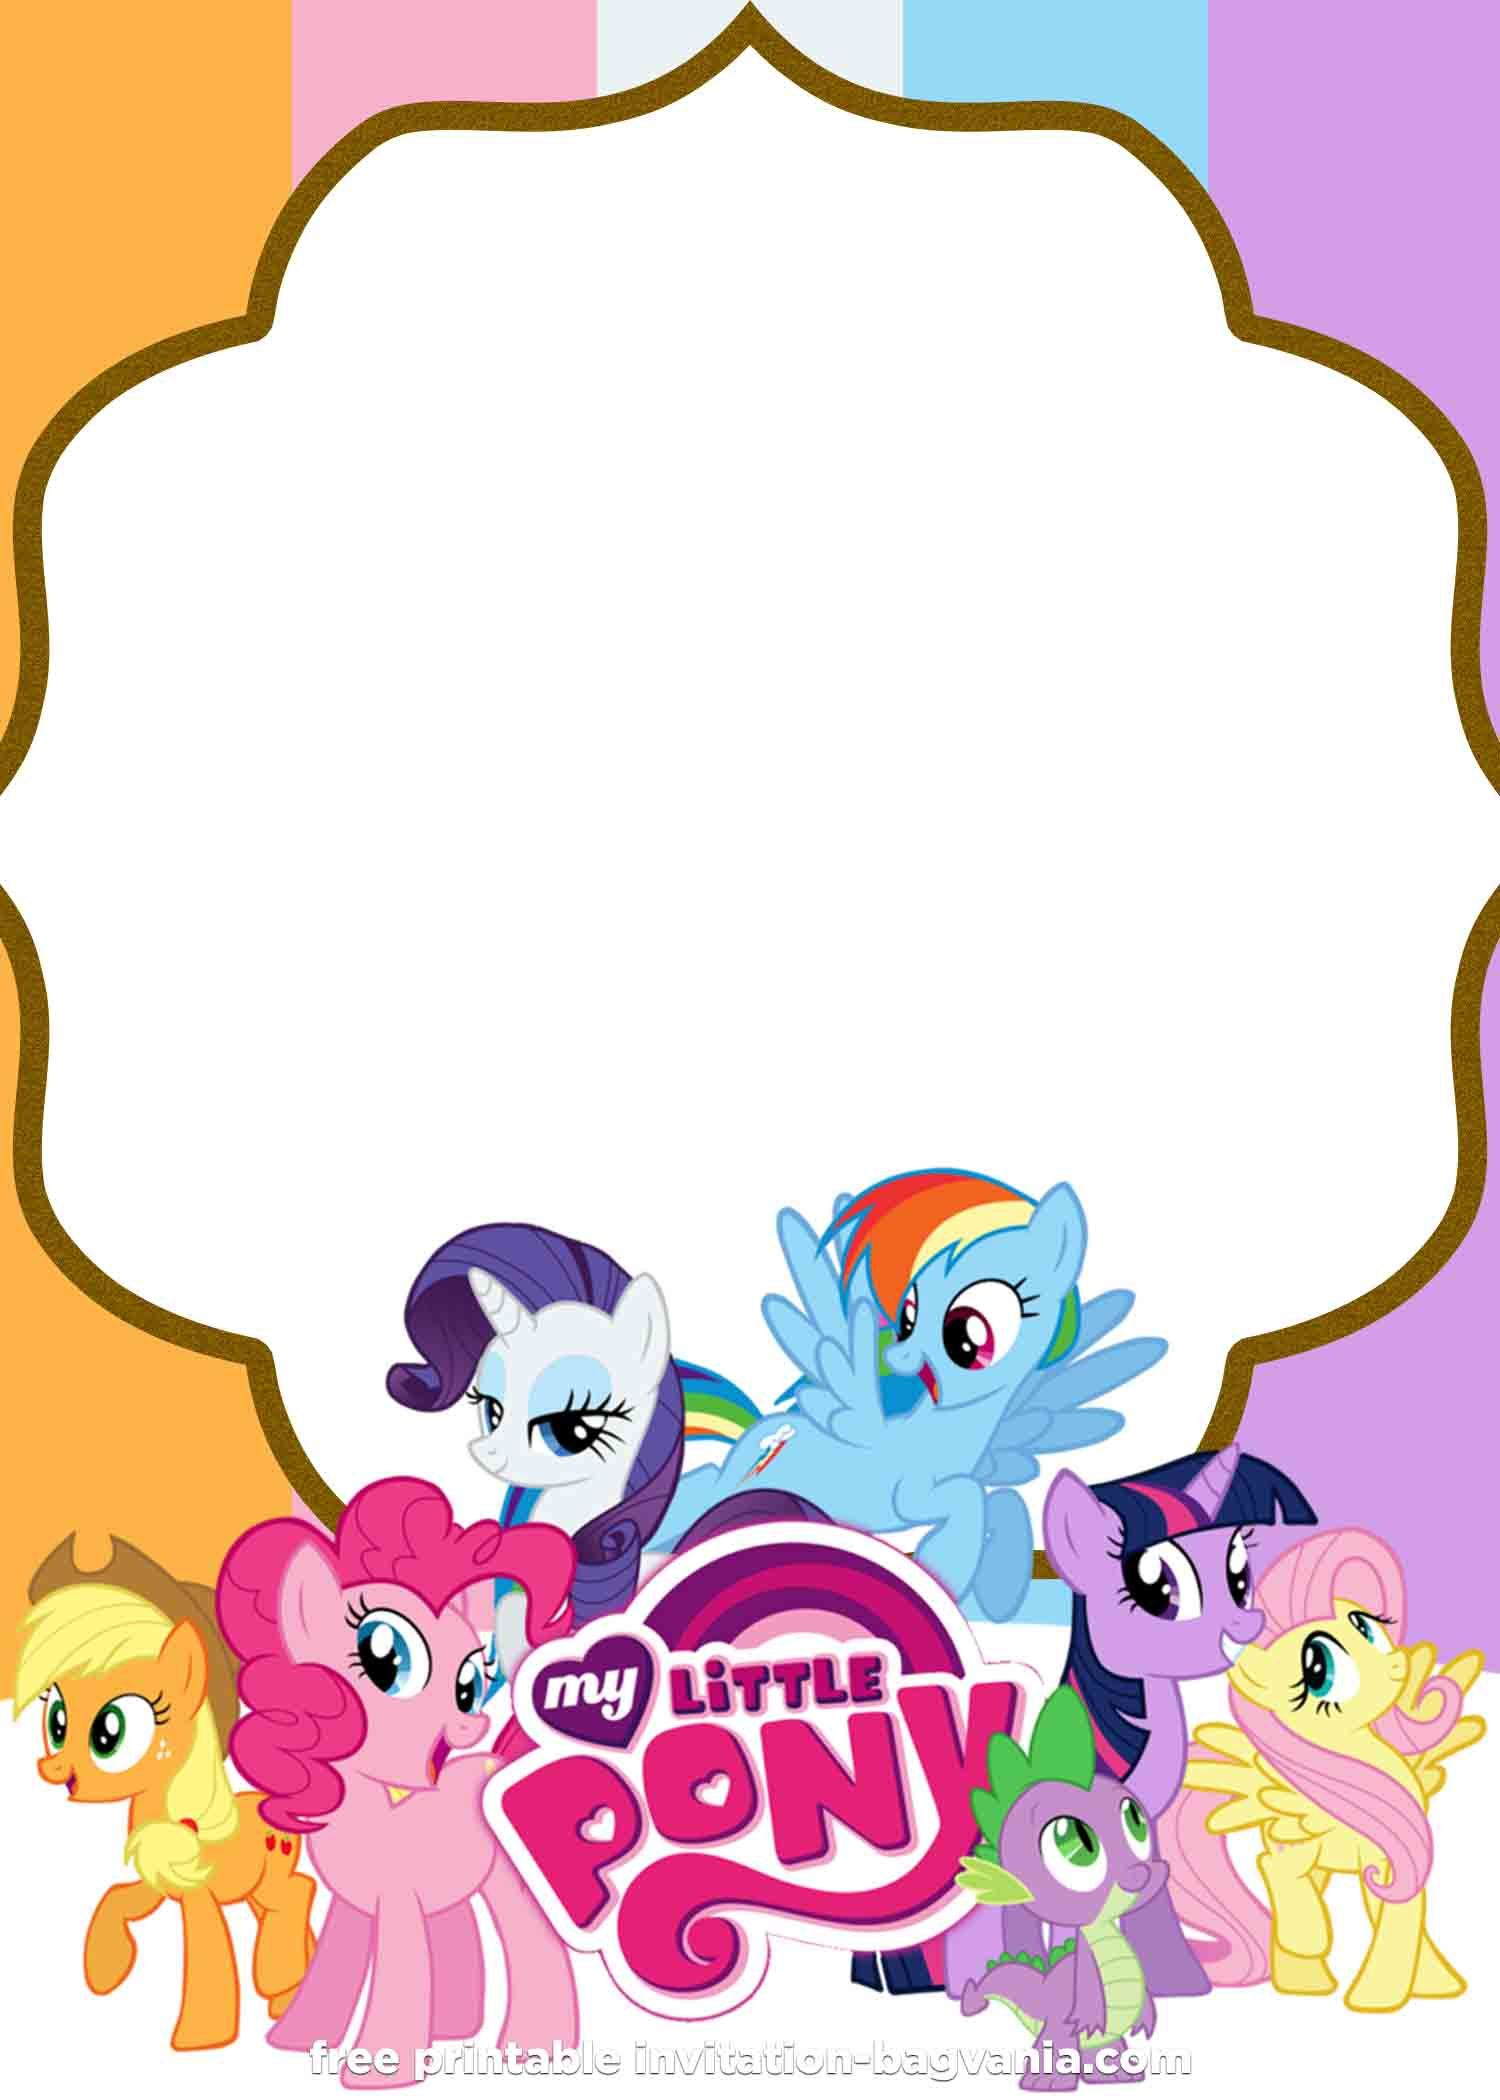 Free Printable My Little Pony Summer Edition Invitations My Little Pony Invitations My Little Pony Birthday My Little Pony Birthday Party